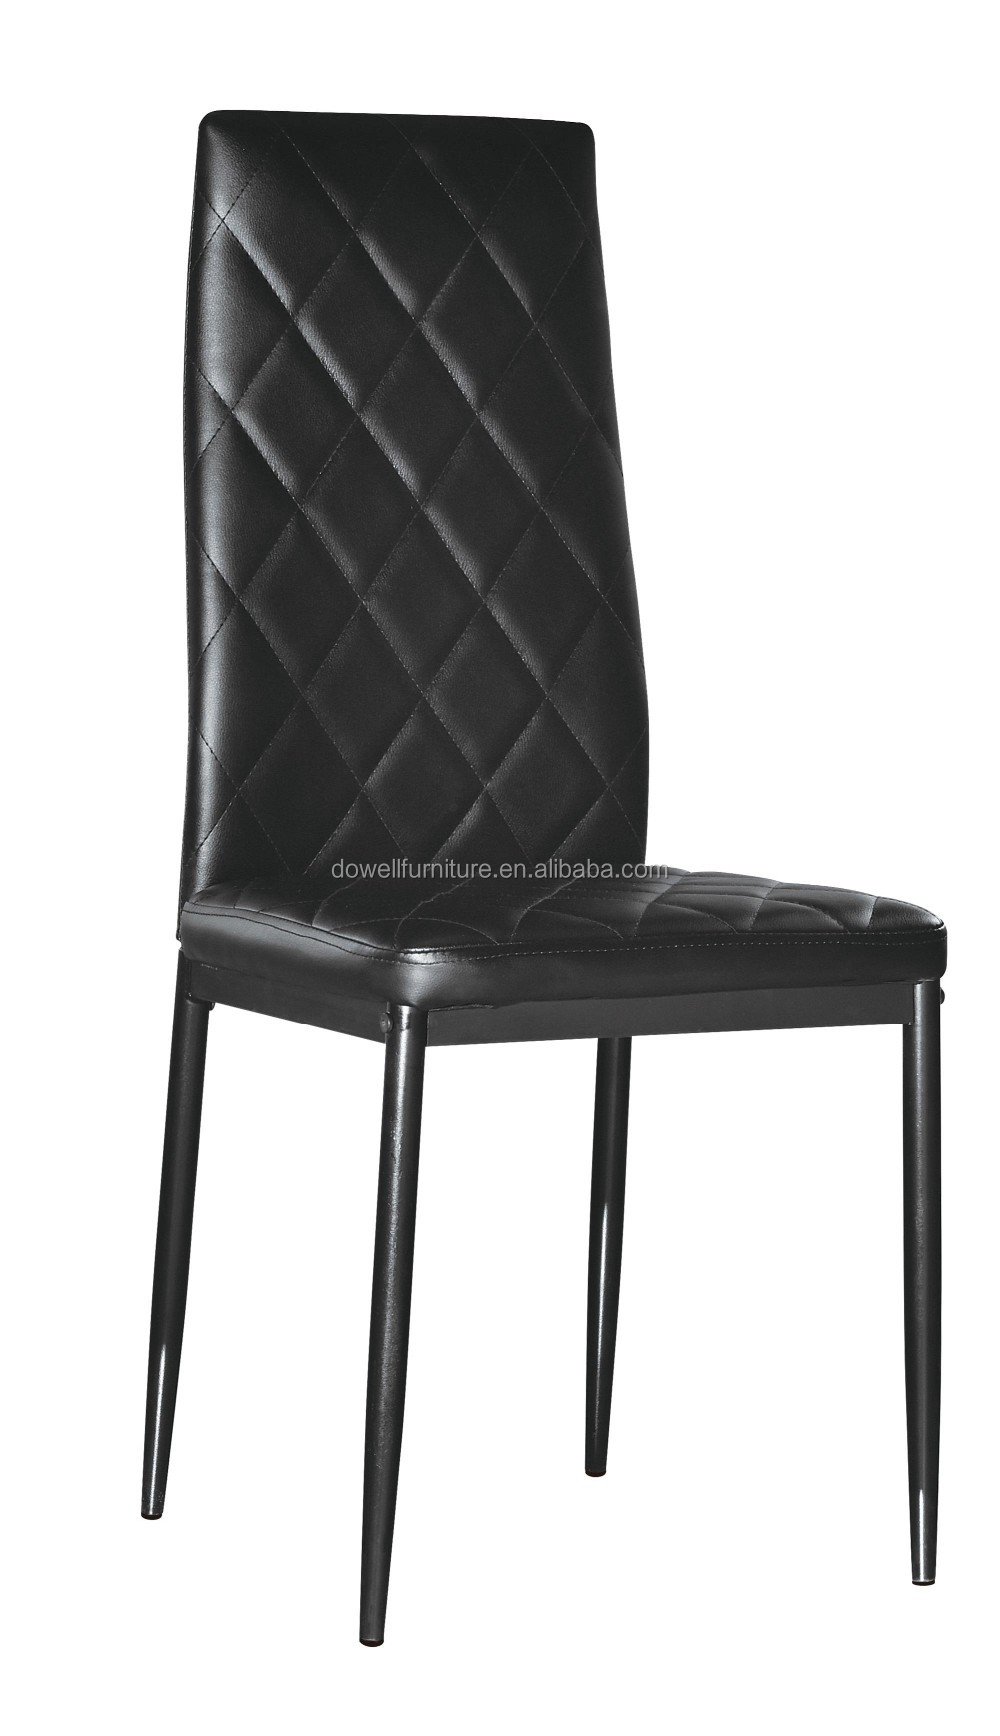 Dining Room Chairs Wholesale, Dine Room Suppliers - Alibaba